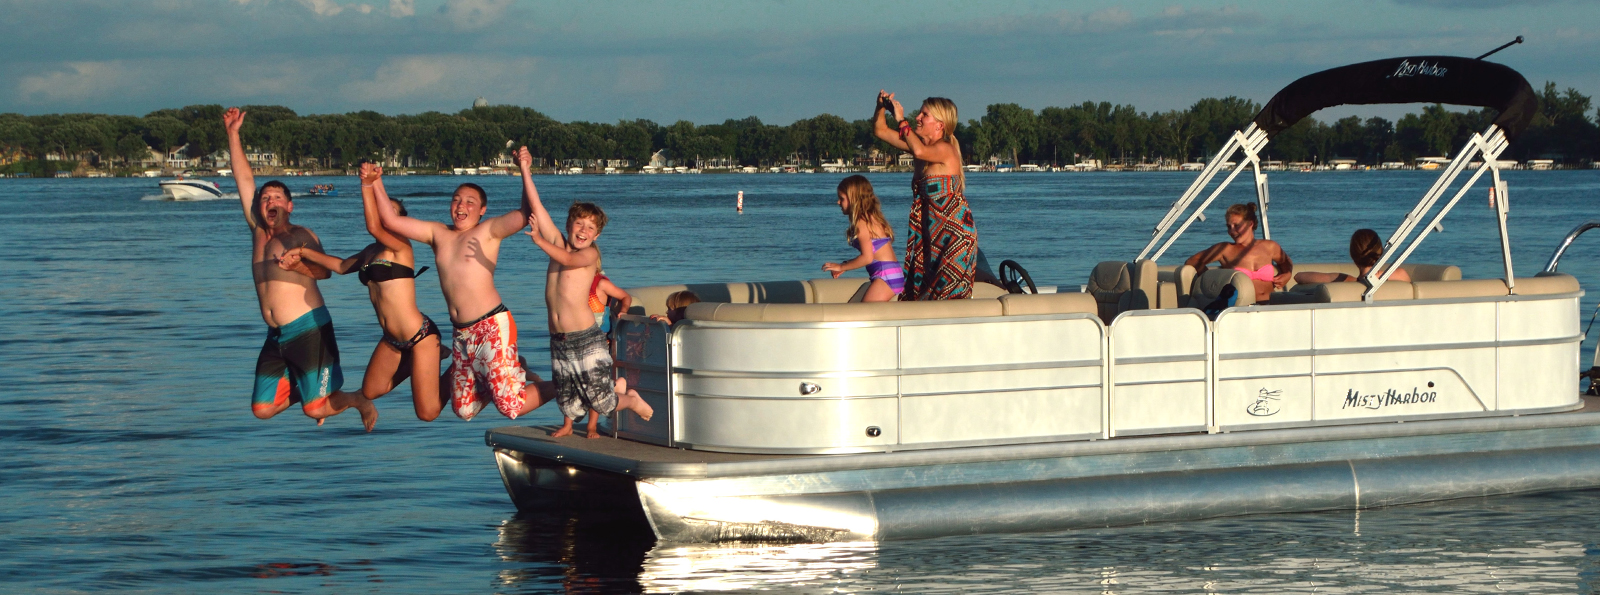 New And Used Boat Sales In Aurora Il Carl Stirns Marine